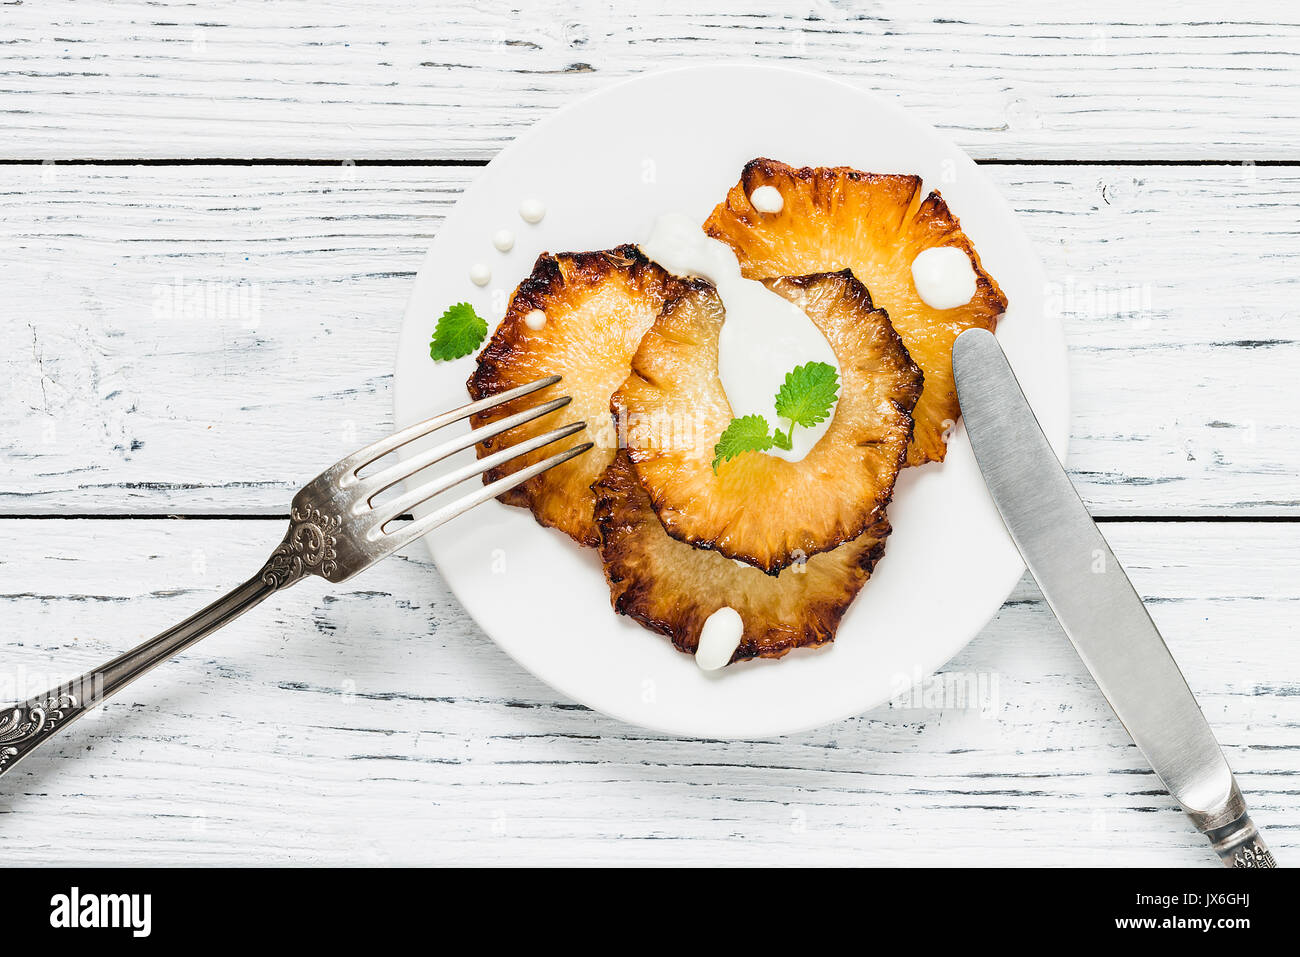 Fried pineapple slices with creme fraiche, mint in white plate on wooden background. Top view - Stock Image